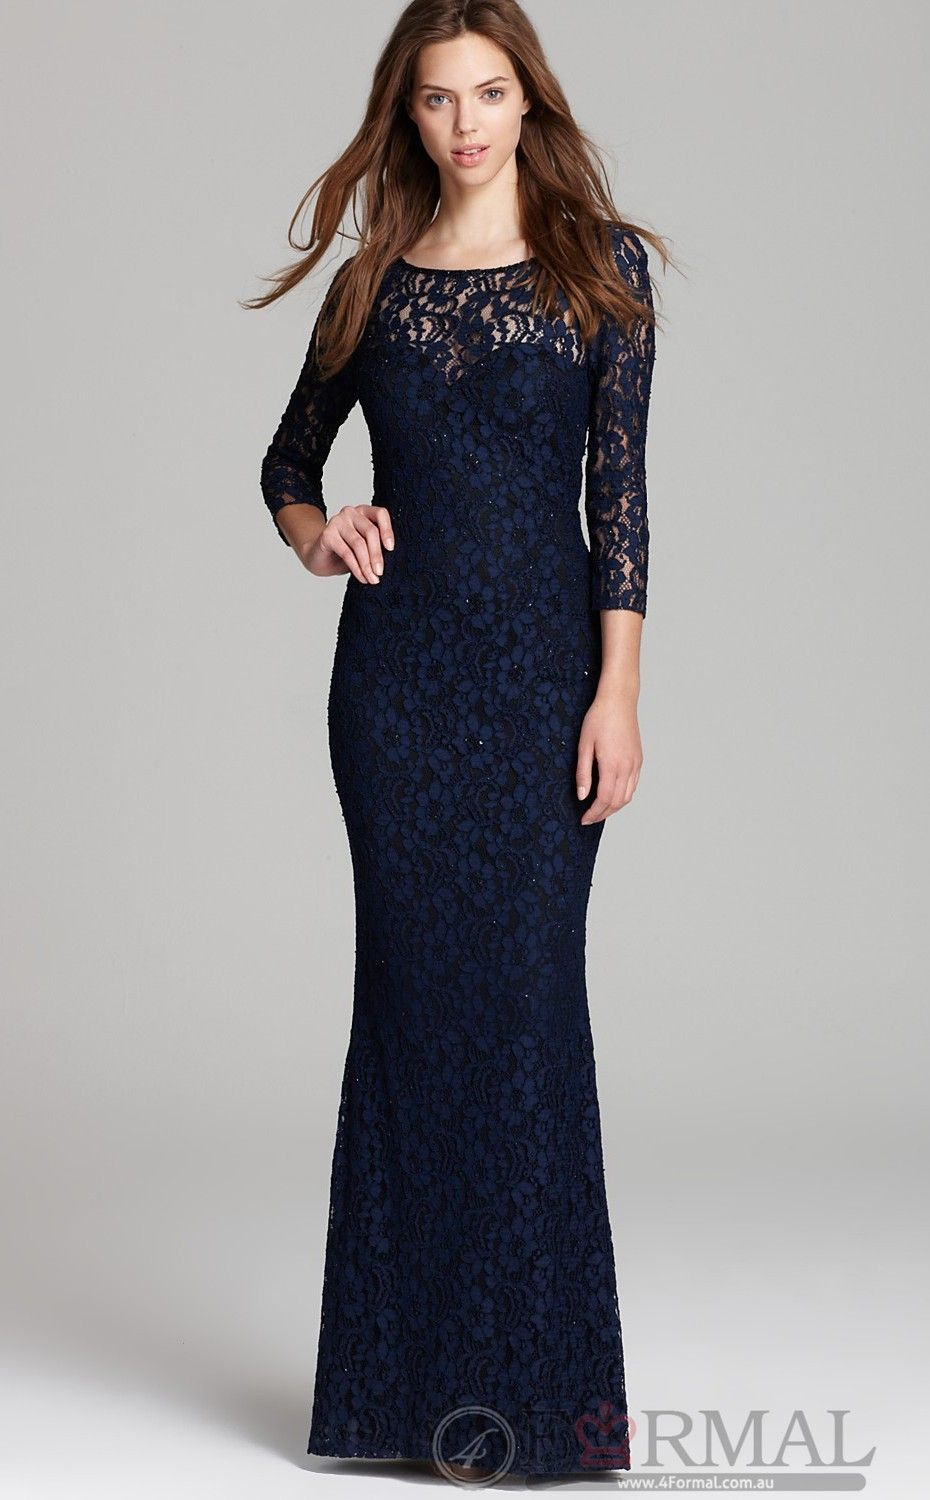 Classy Blue Lace Semi Formal Dress With Sleeves On Sale Blue Long